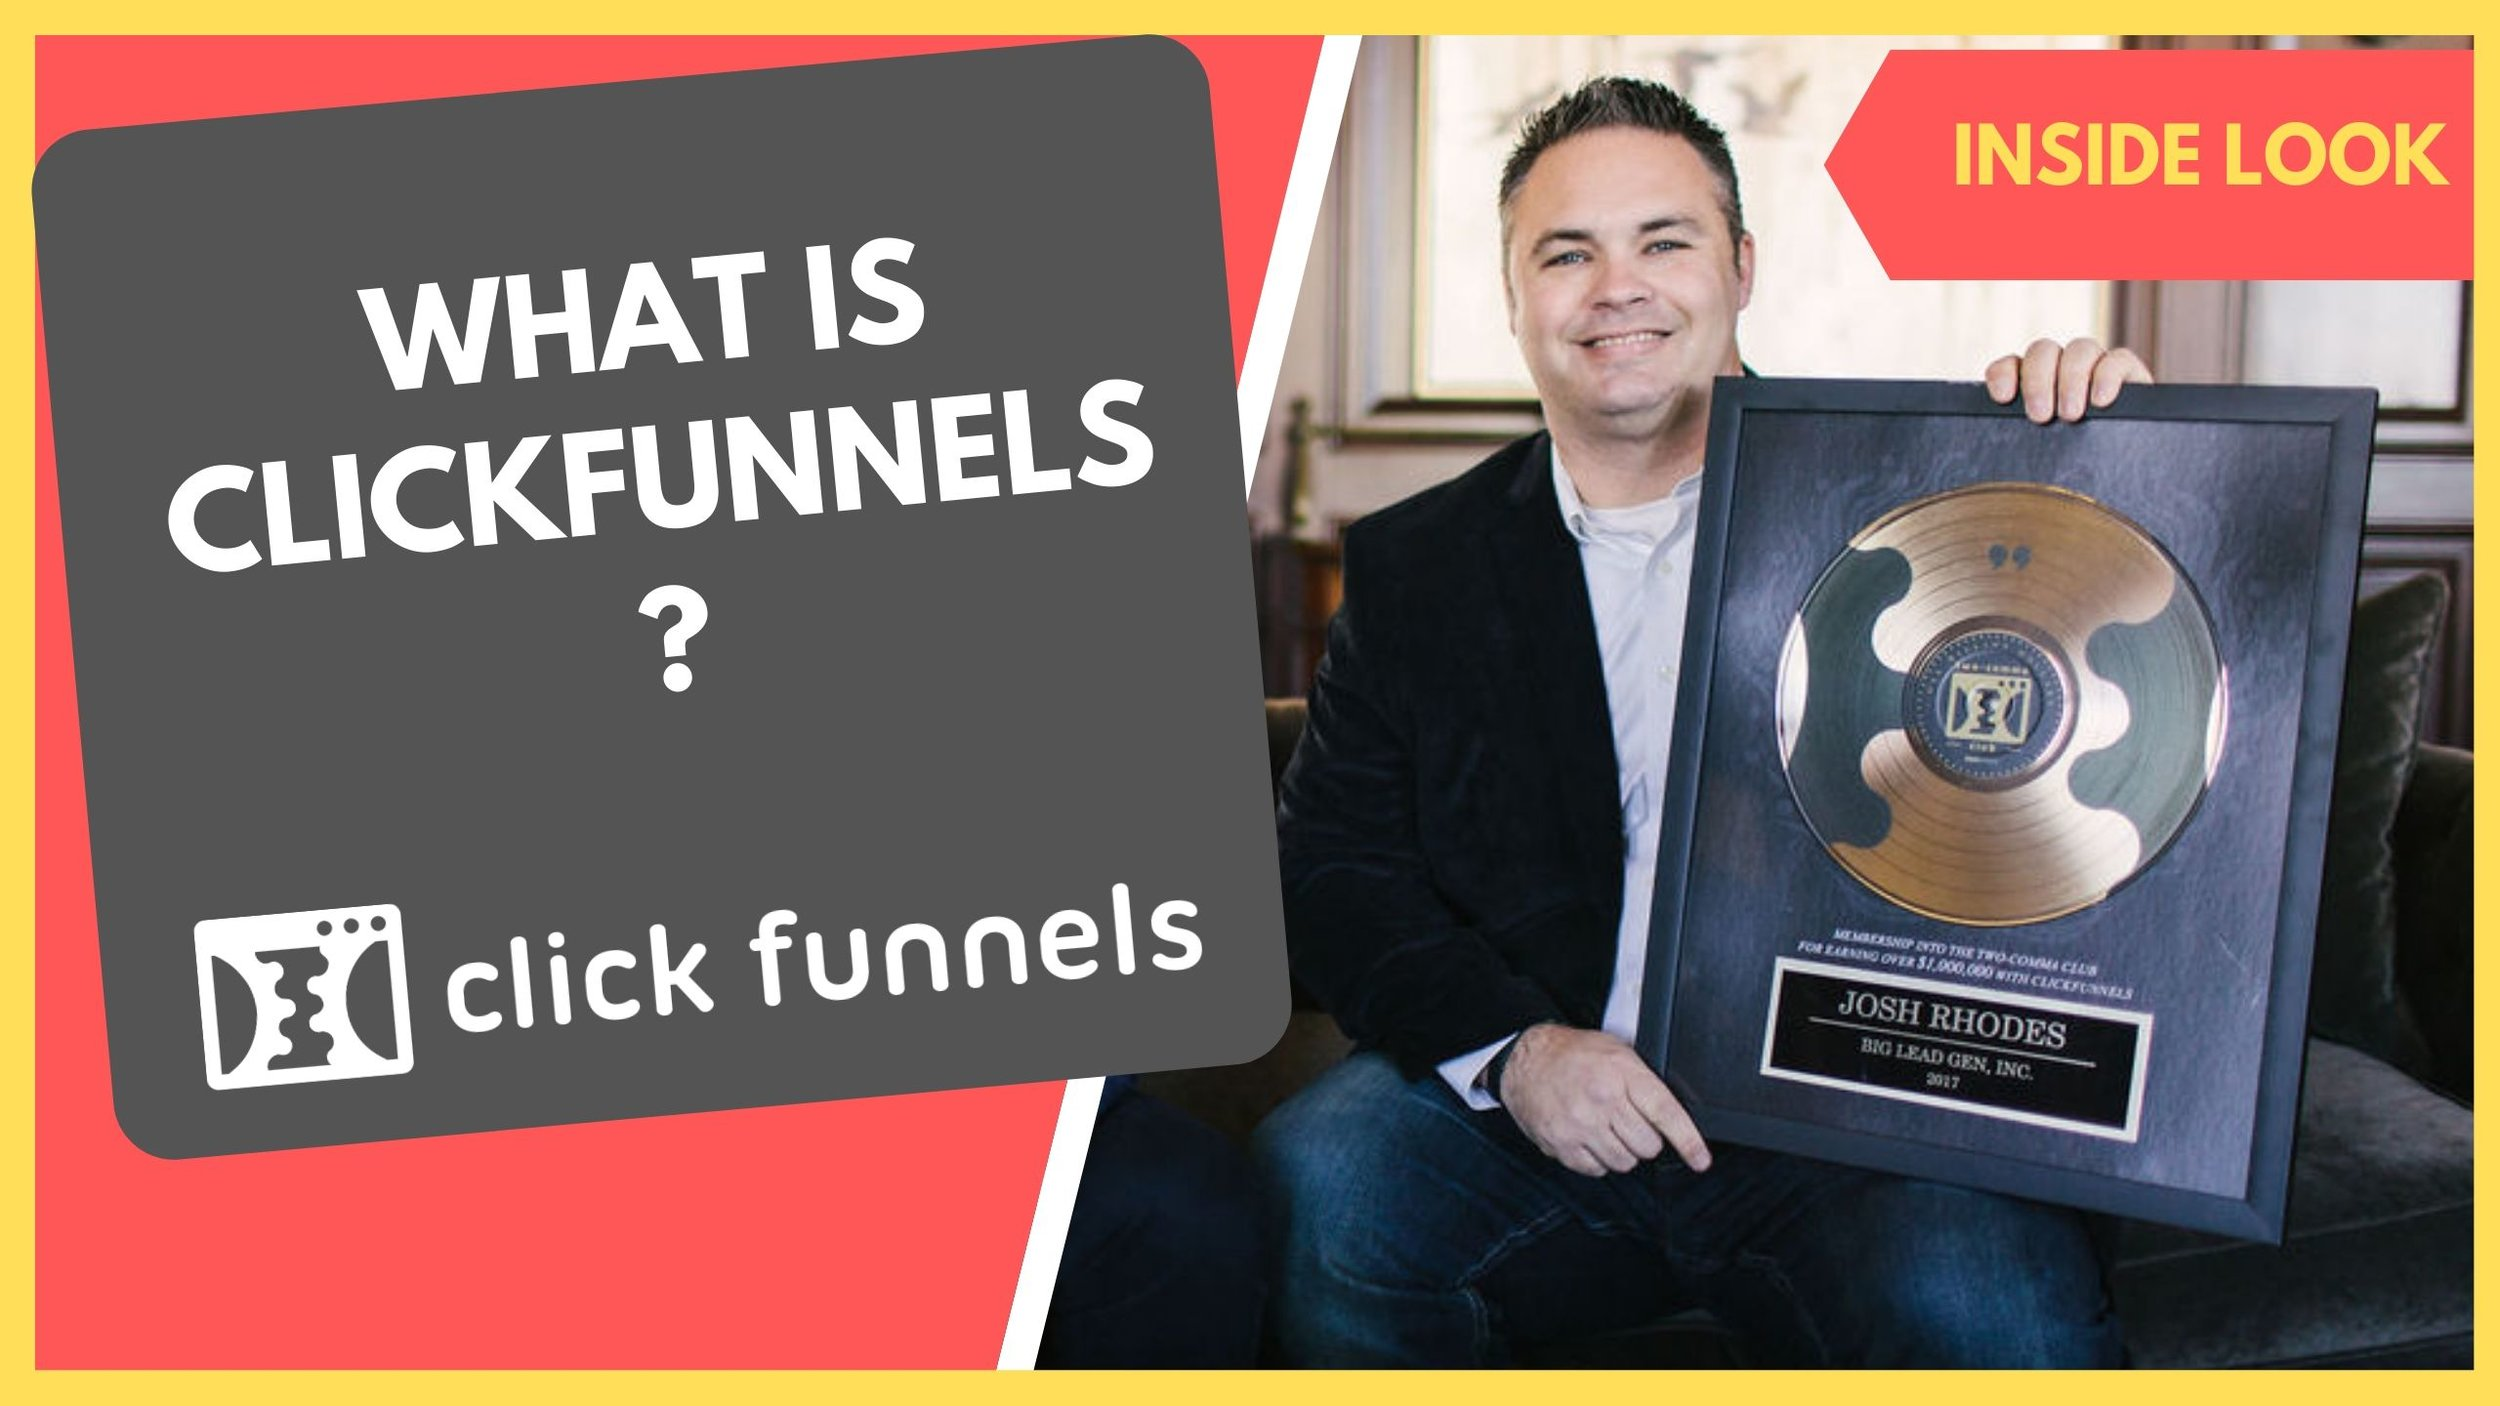 How Does Clickfunnels Pay Affiliates